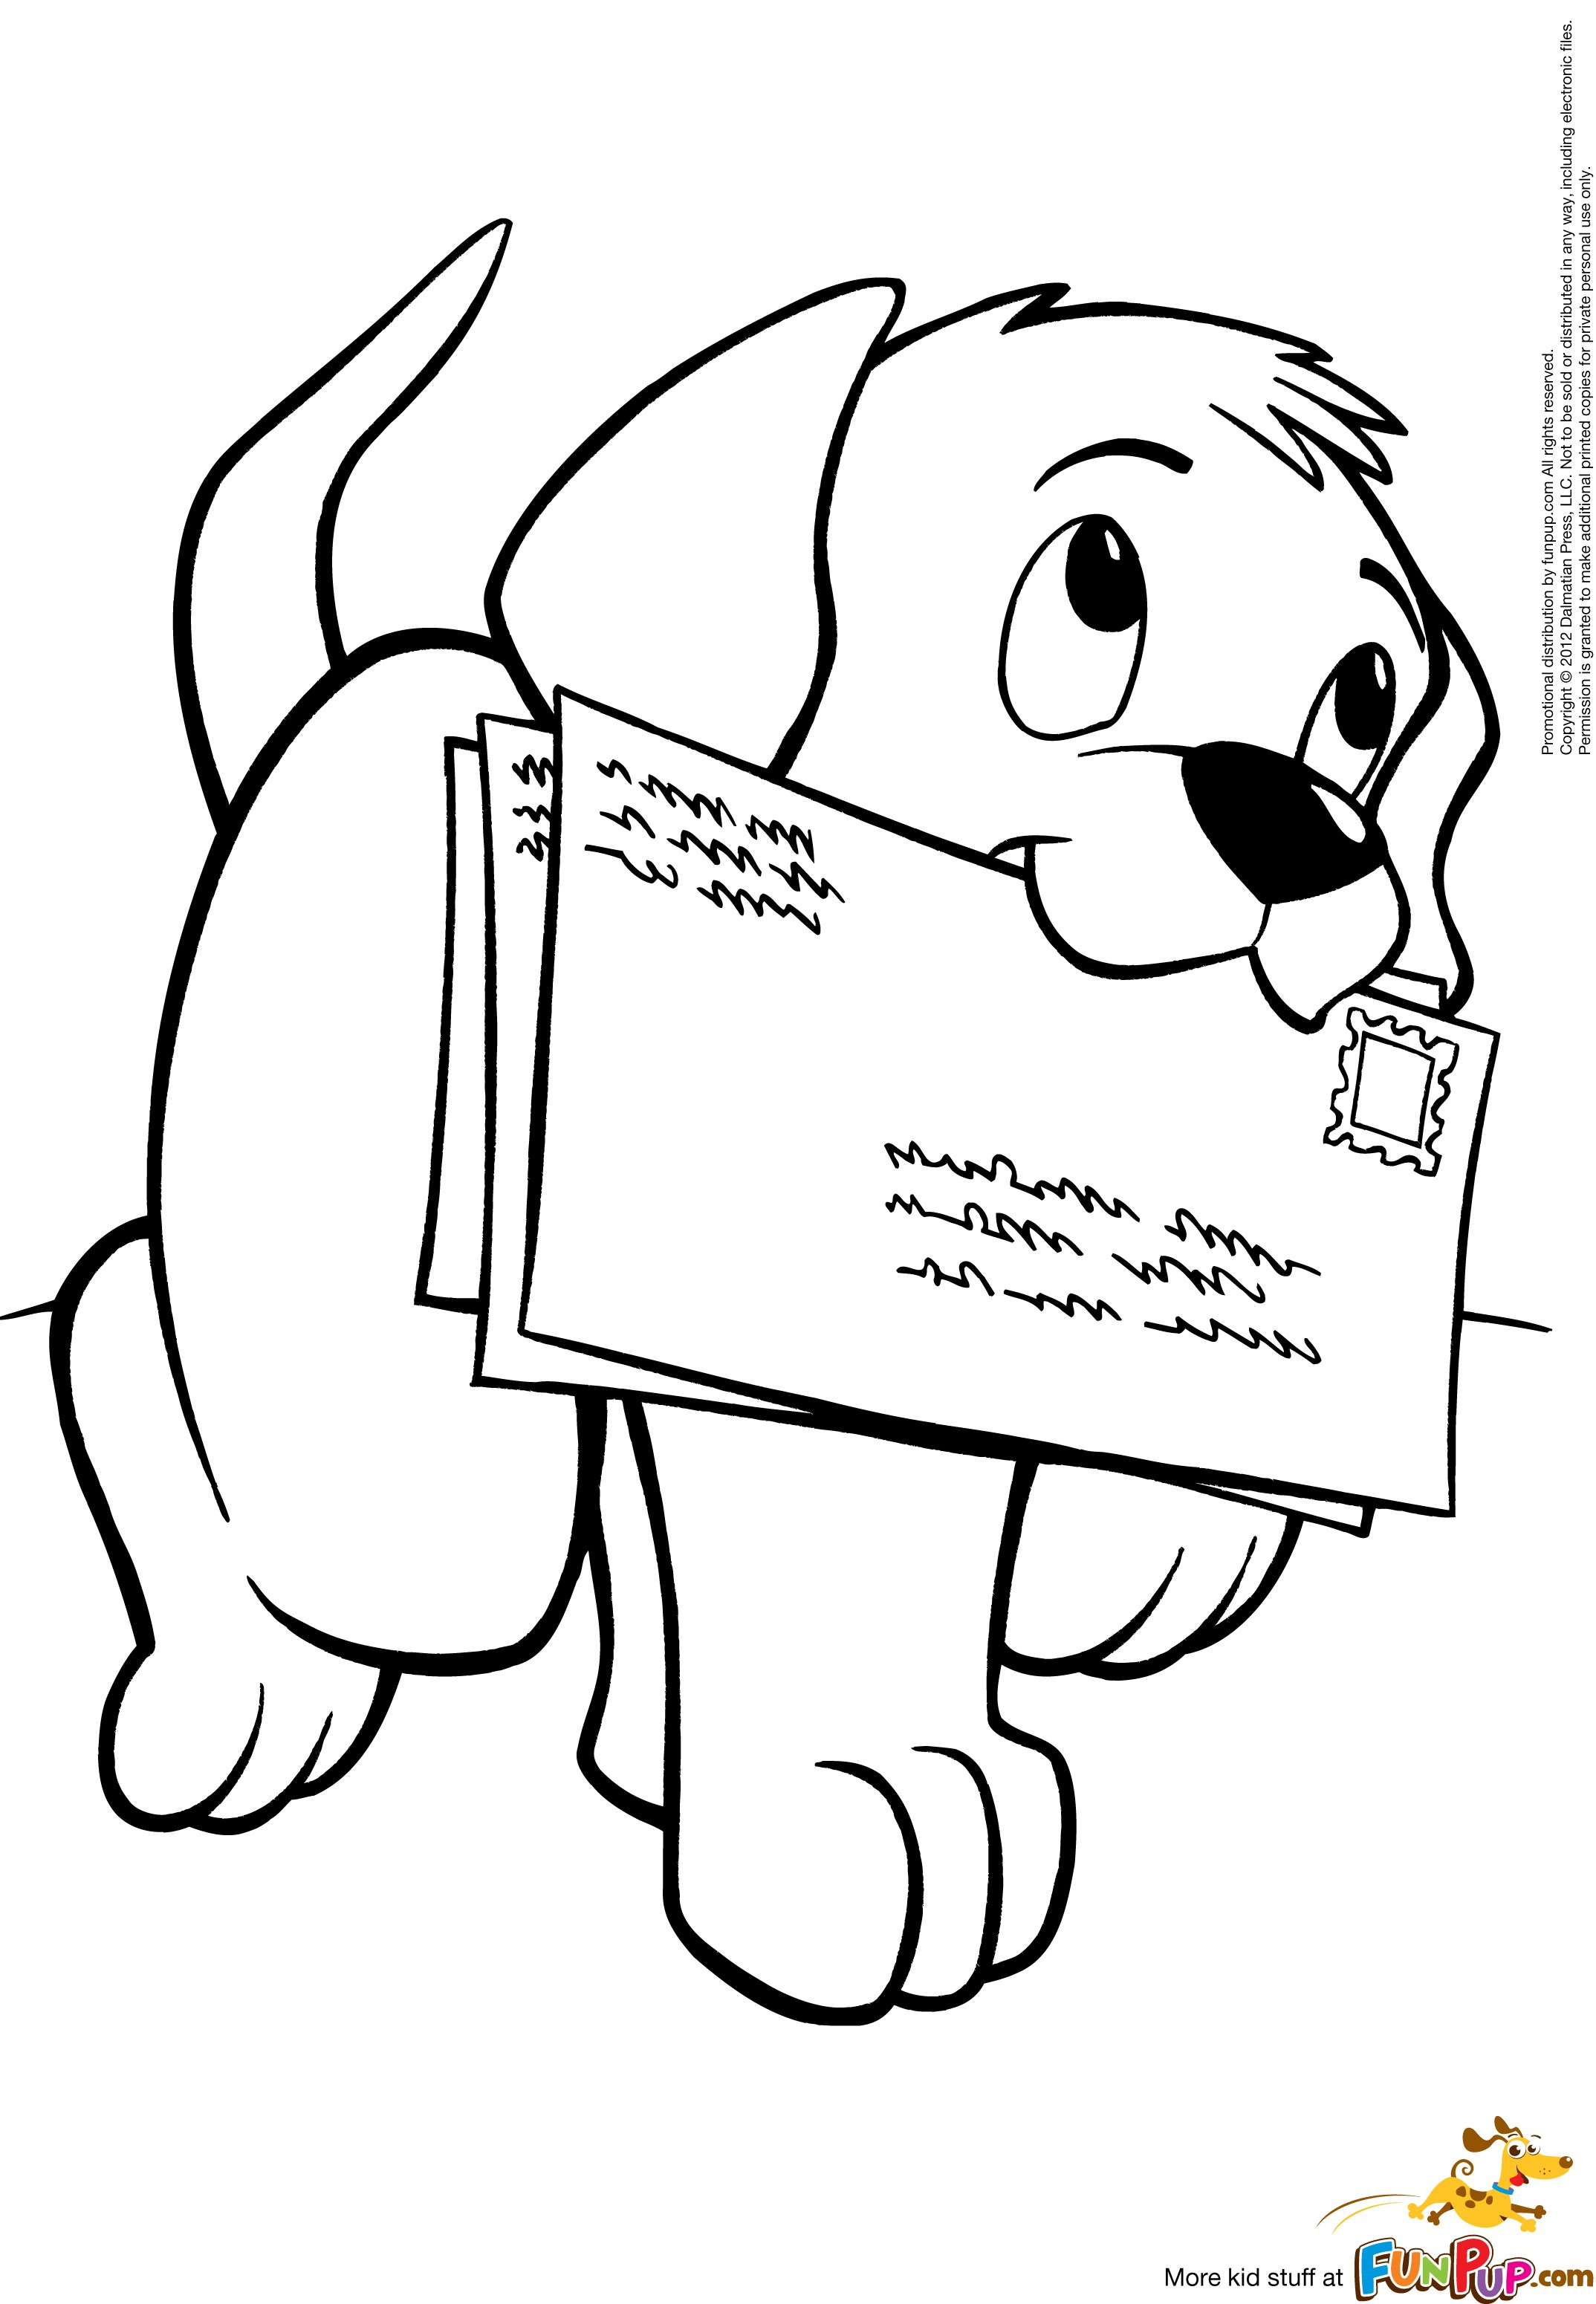 Coloring Pages Cute Dogs at GetDrawings.com | Free for ...